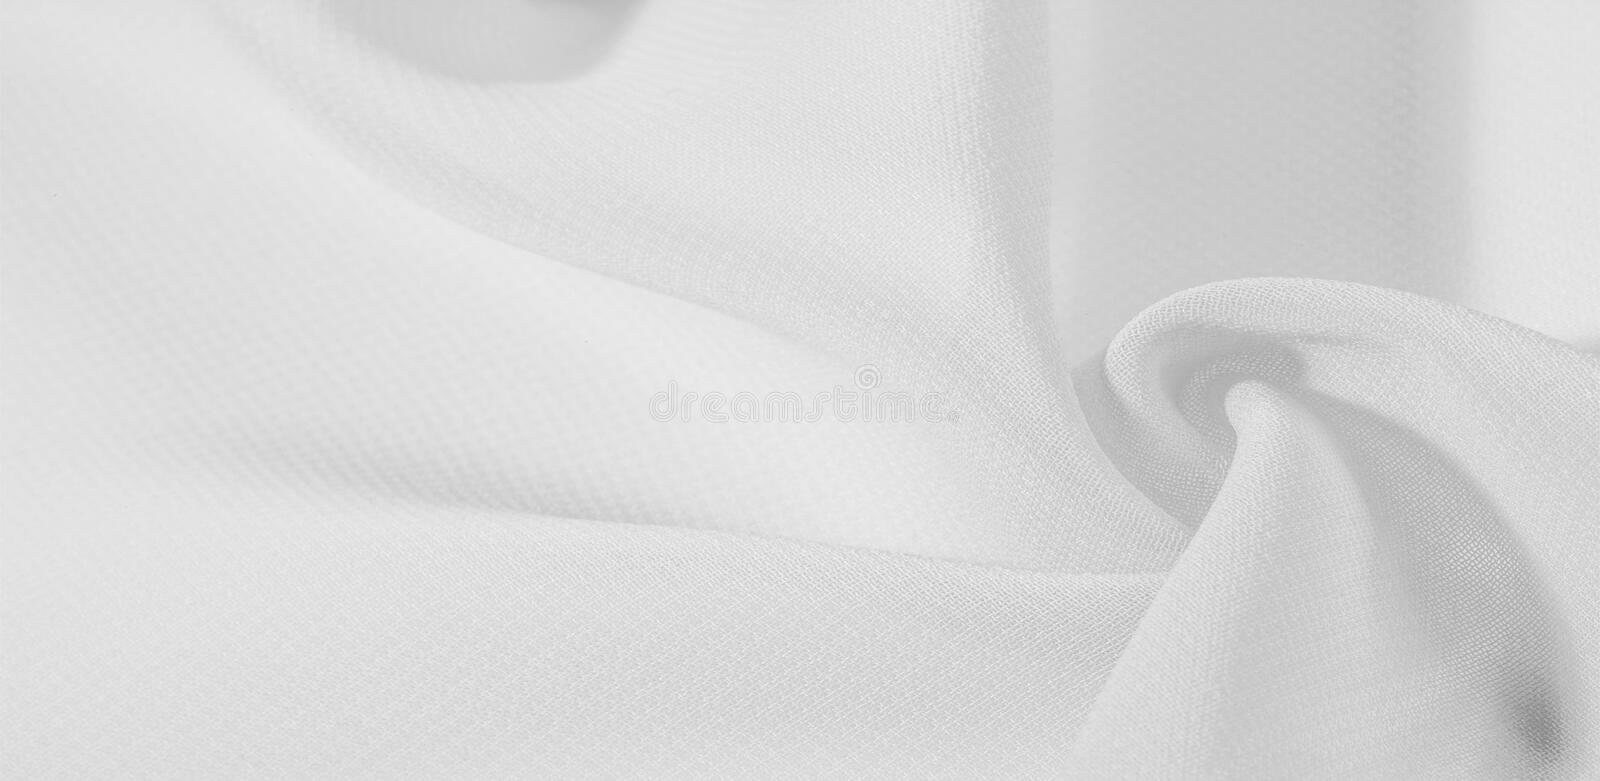 Texture background pattern. White silk fabric with a subtle matte sheen. It is perfect for your design, accents, wallpapers,. Posters and postcards royalty free stock images